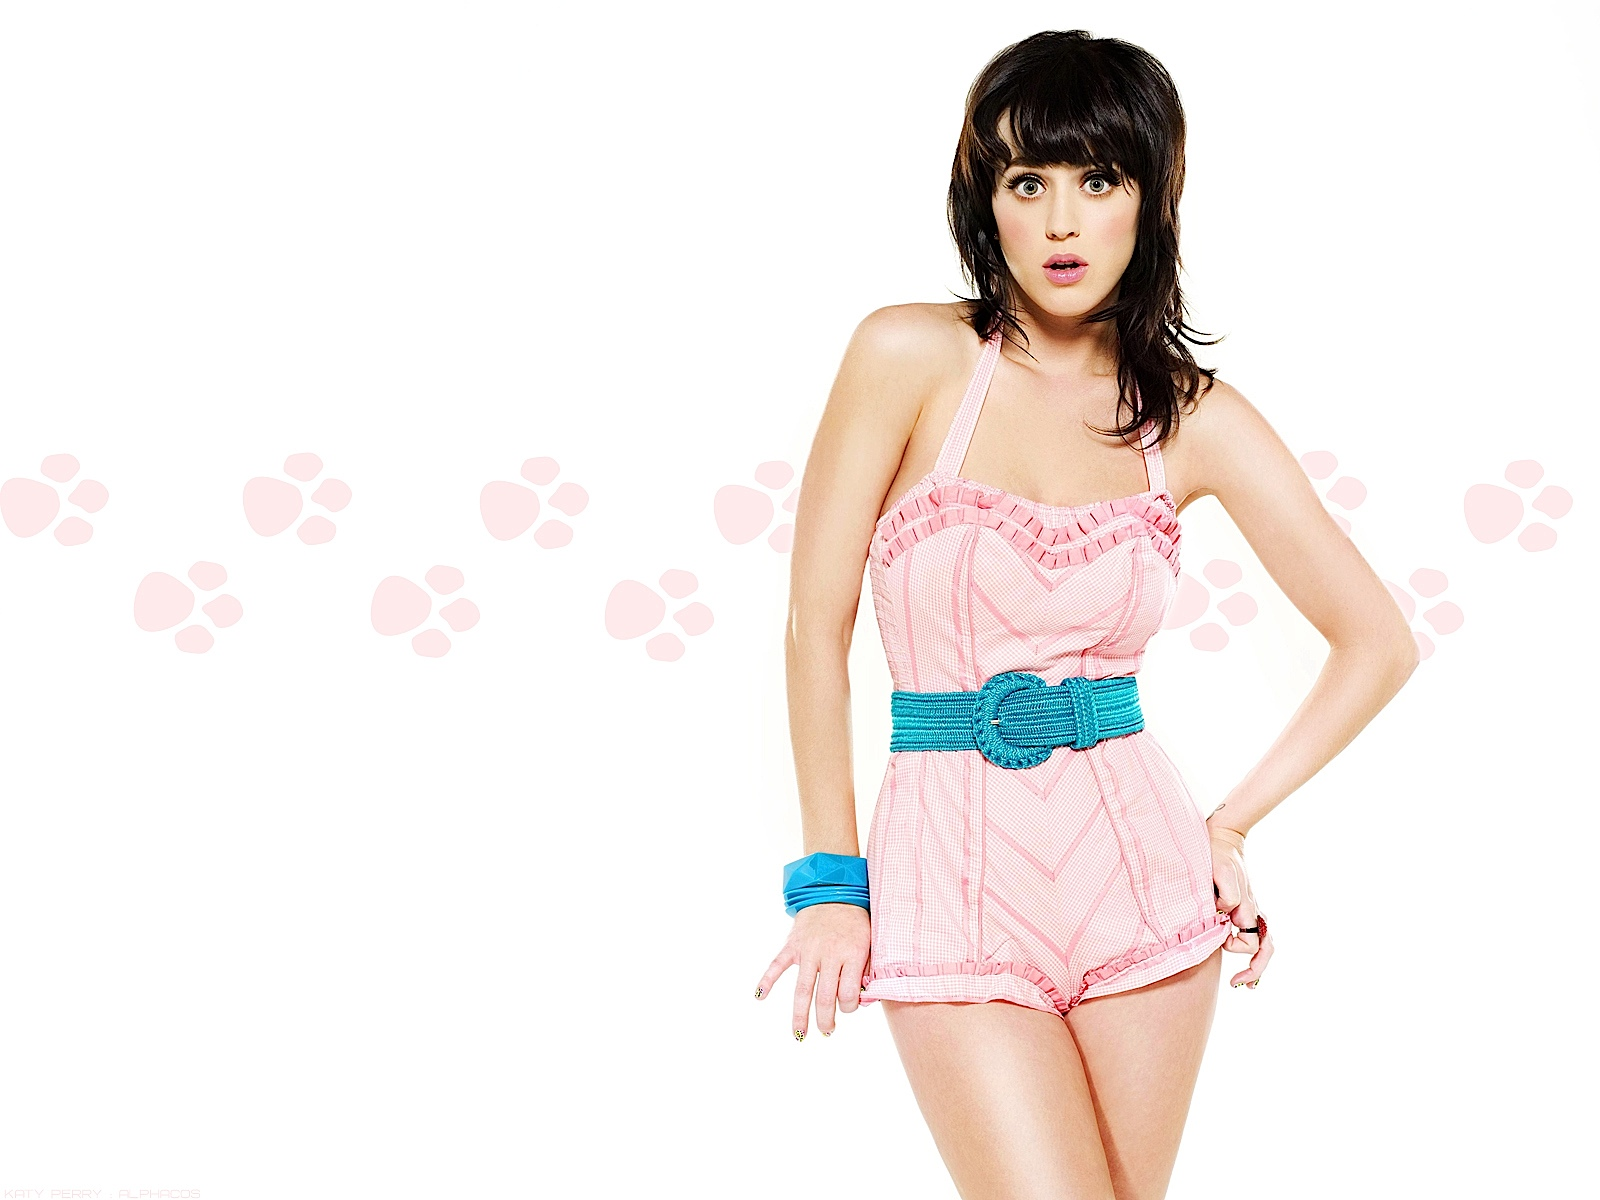 Top 50 Best Katy Perry Wallpapers - Hot HD Pics